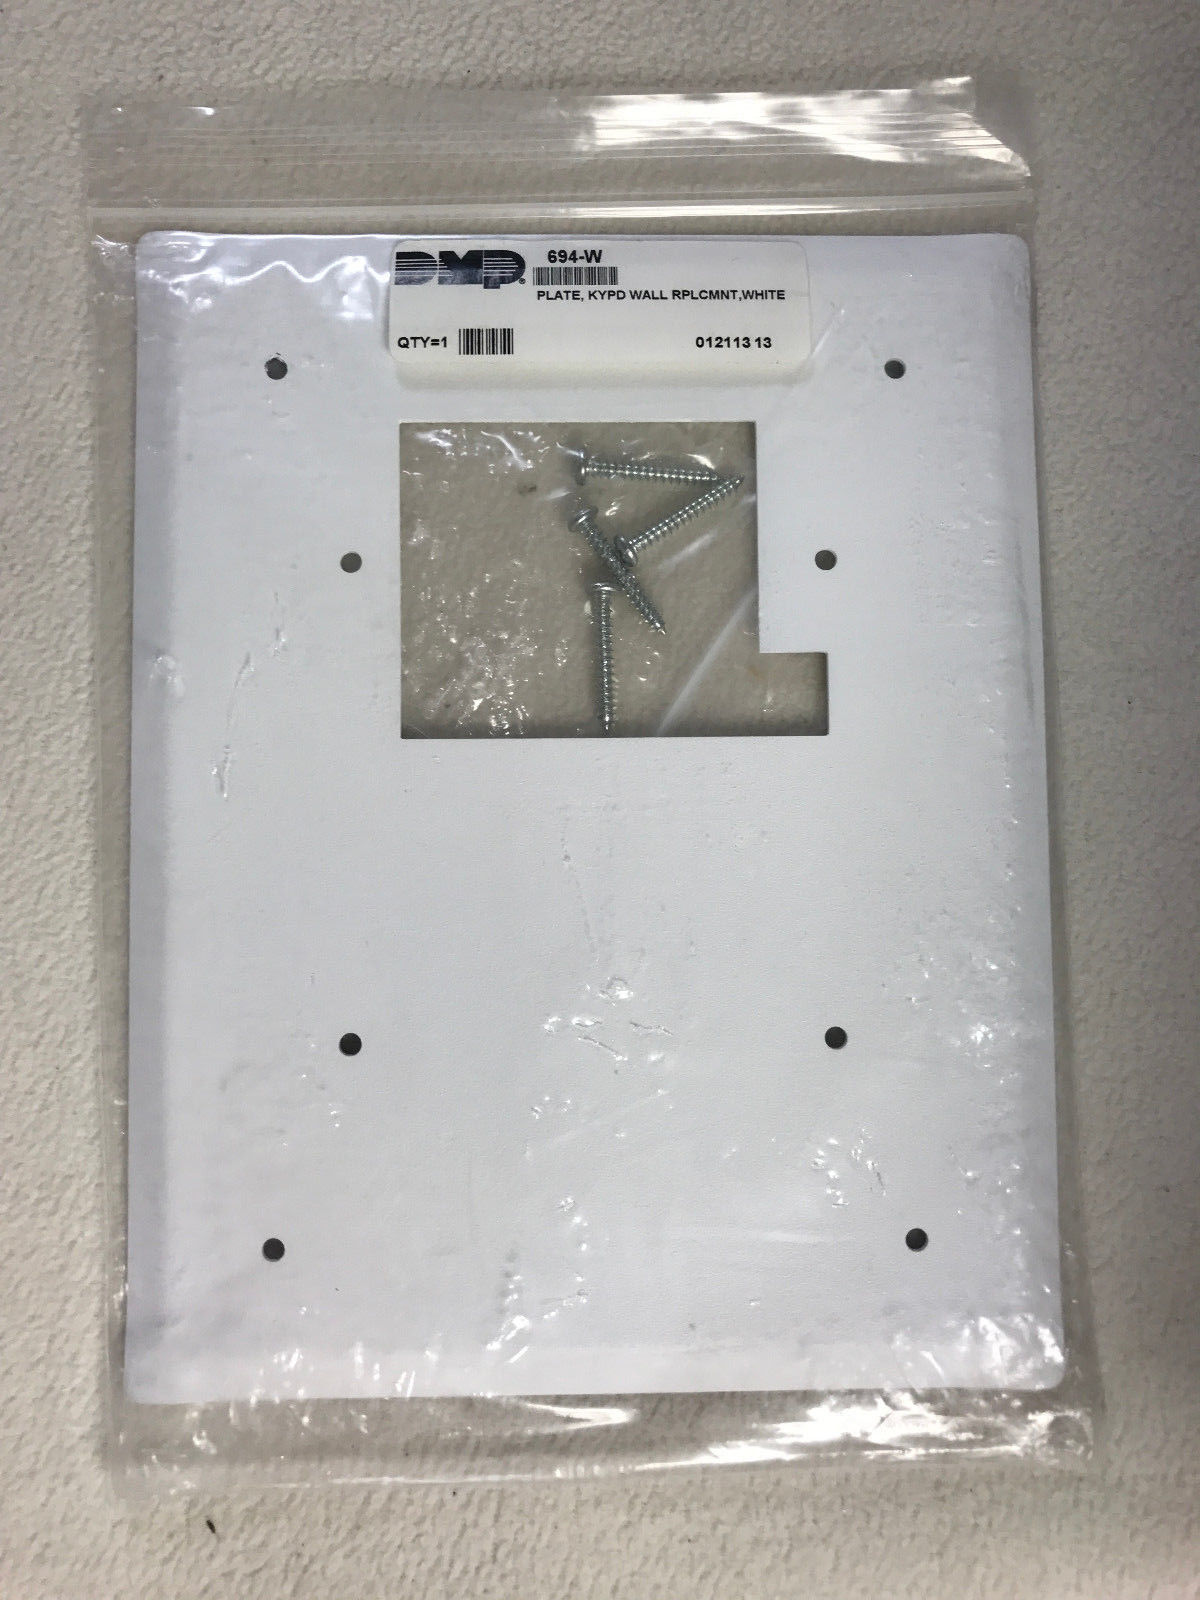 NEW DMP 694-W Metal Plate Keypad Wall and 35 similar items